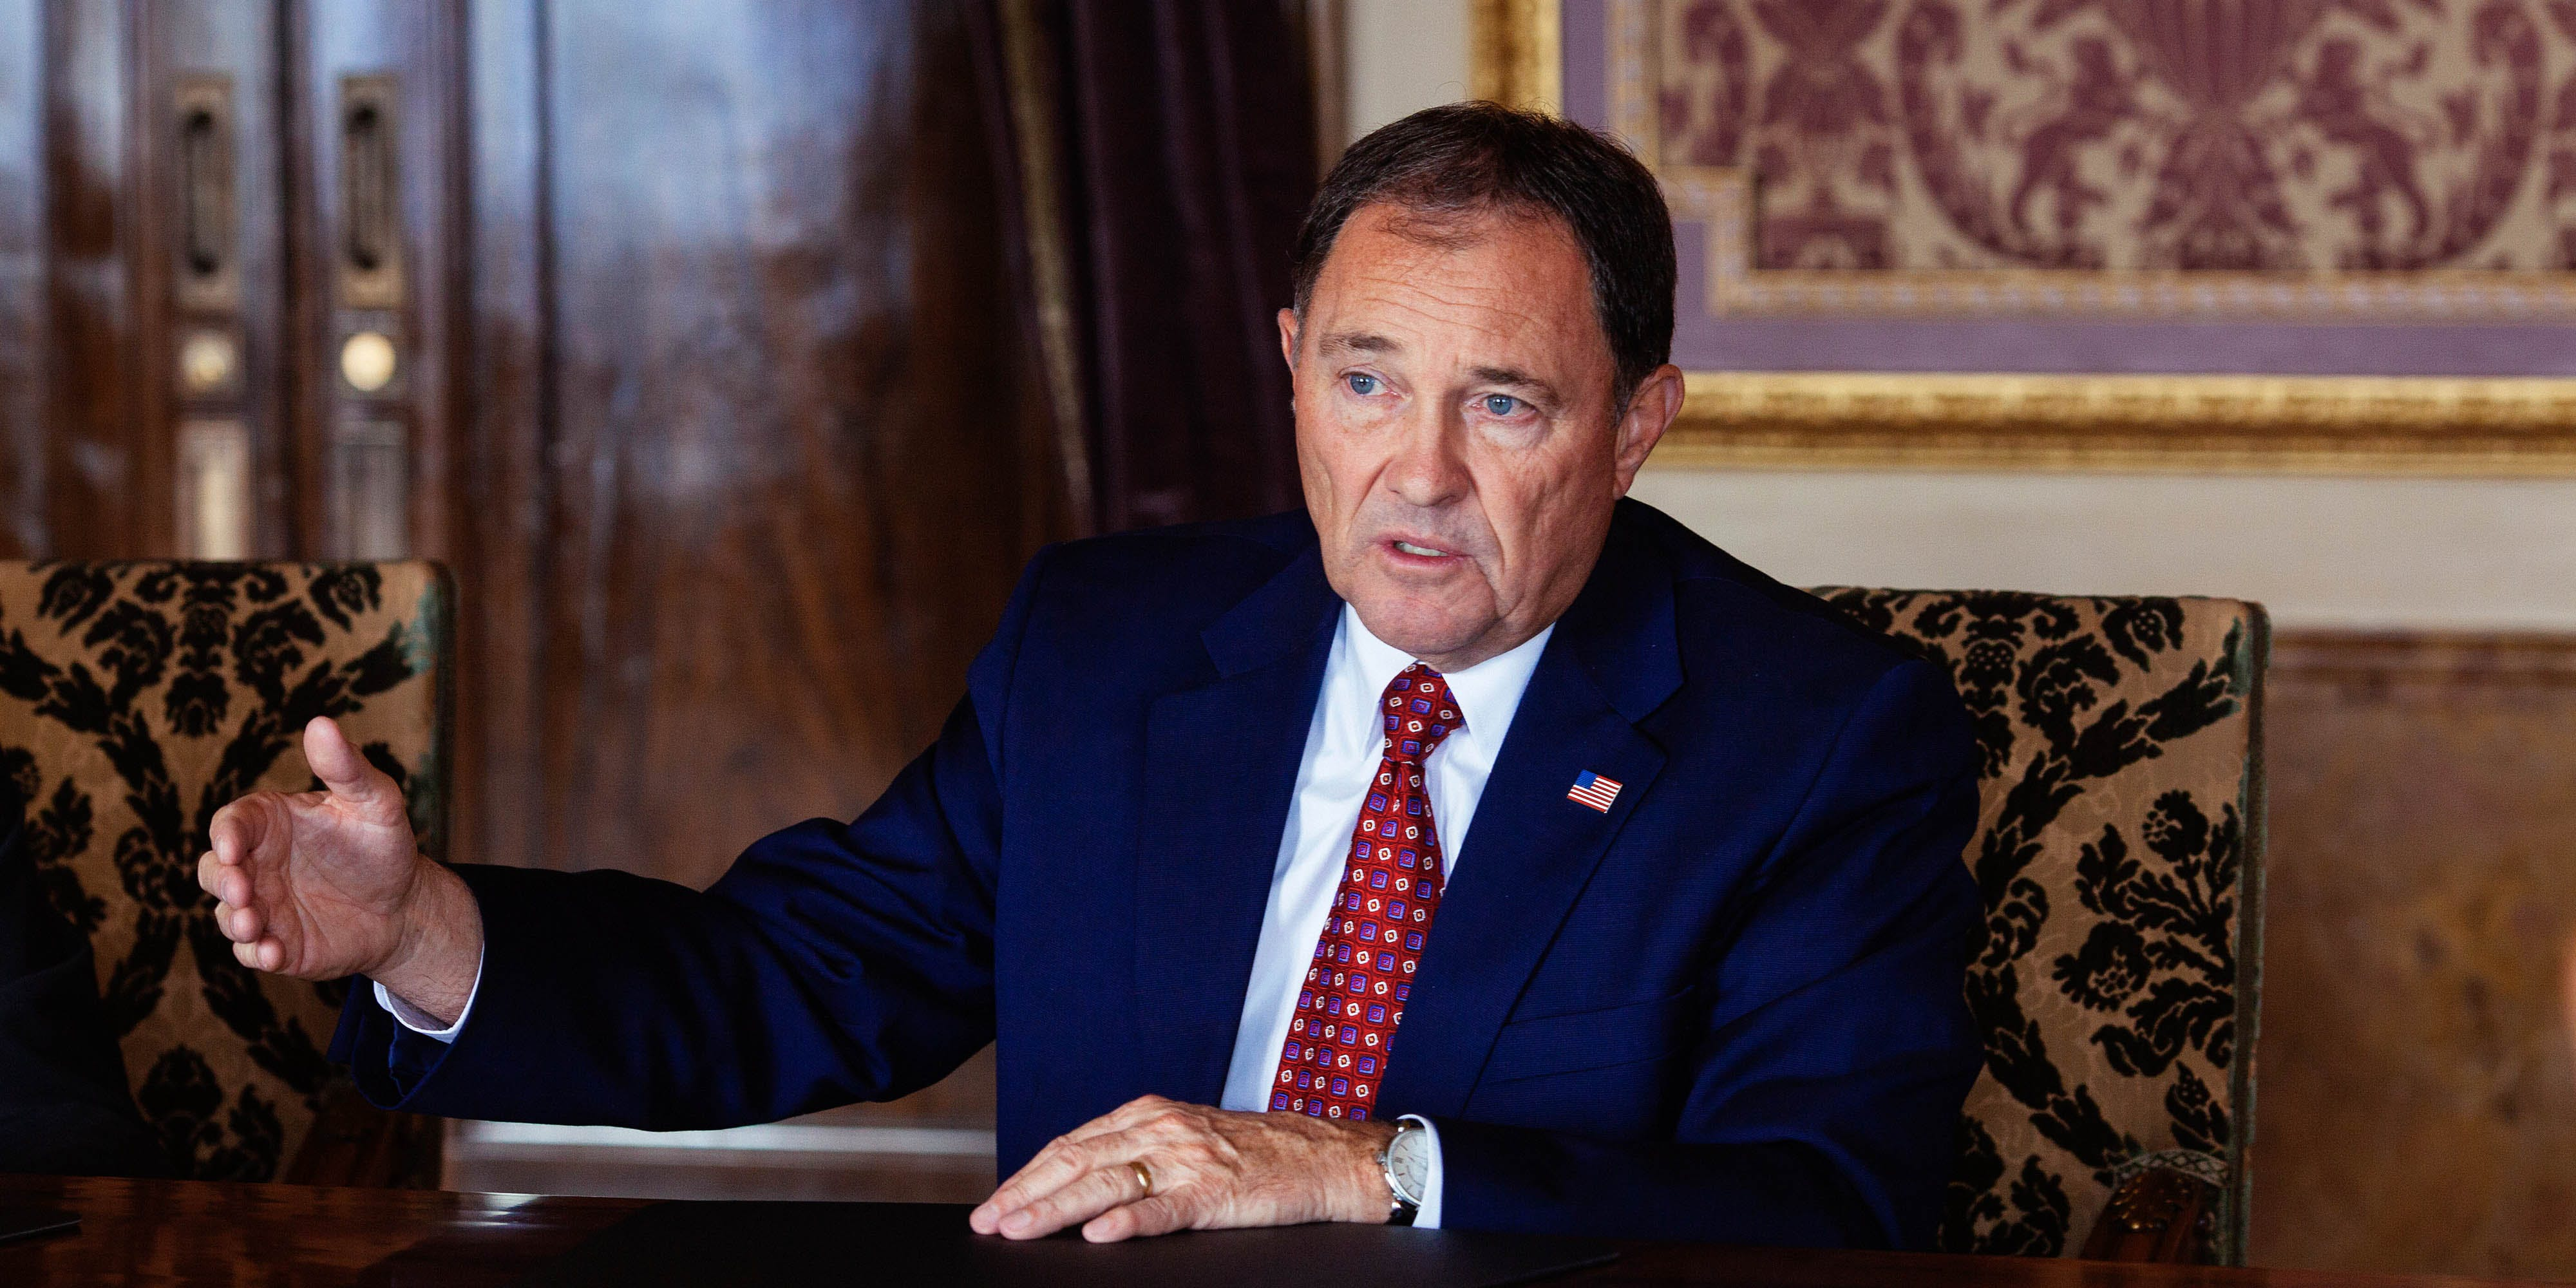 Gary Herbert, governor of Utah, speaks during an interview in the Gold Room of the State Capitol building in Salt Lake City, Utah, U.S., on Tuesday, Oct. 27, 2015. (Photo by Cayve Clifford/Bloomberg via Getty Images)